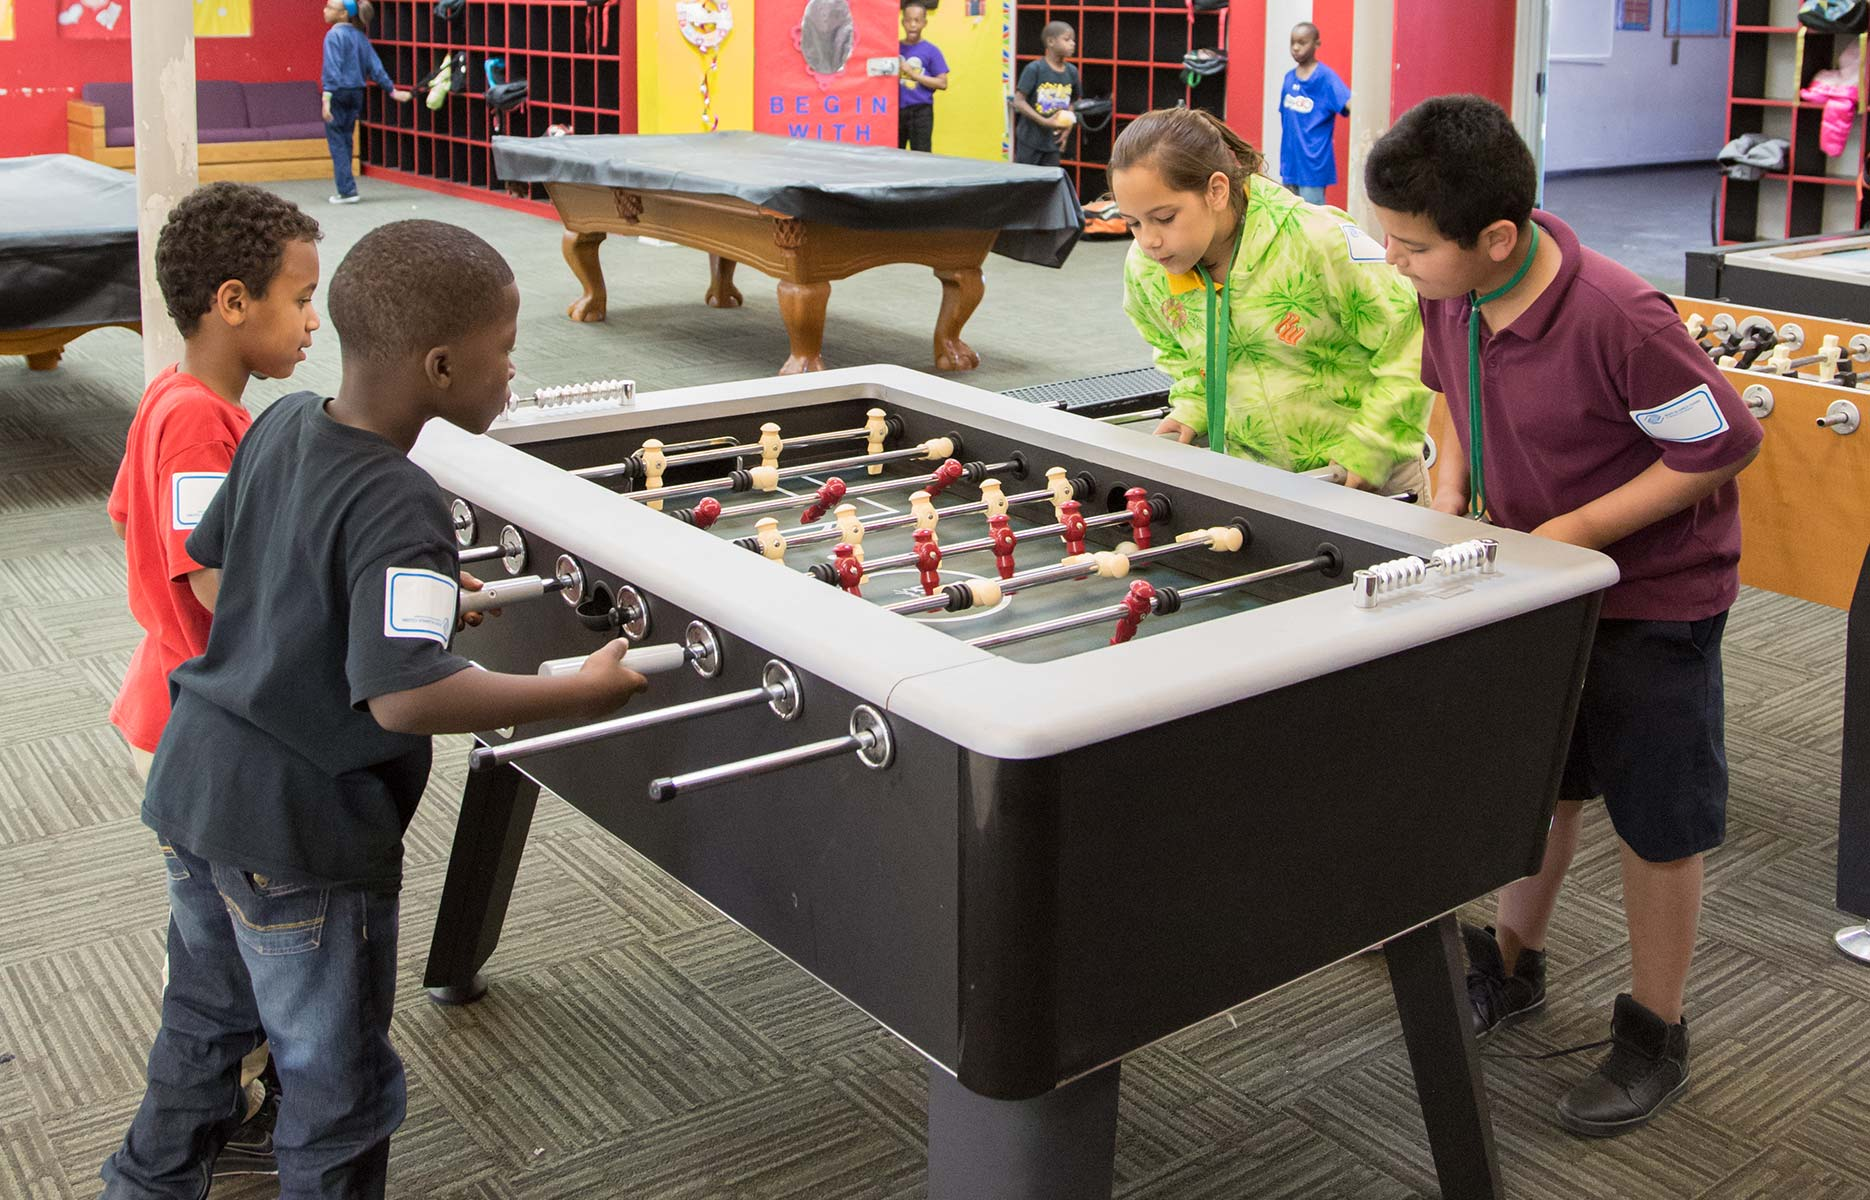 WWS Donates Foosball Table to Boys & Girls Clubs